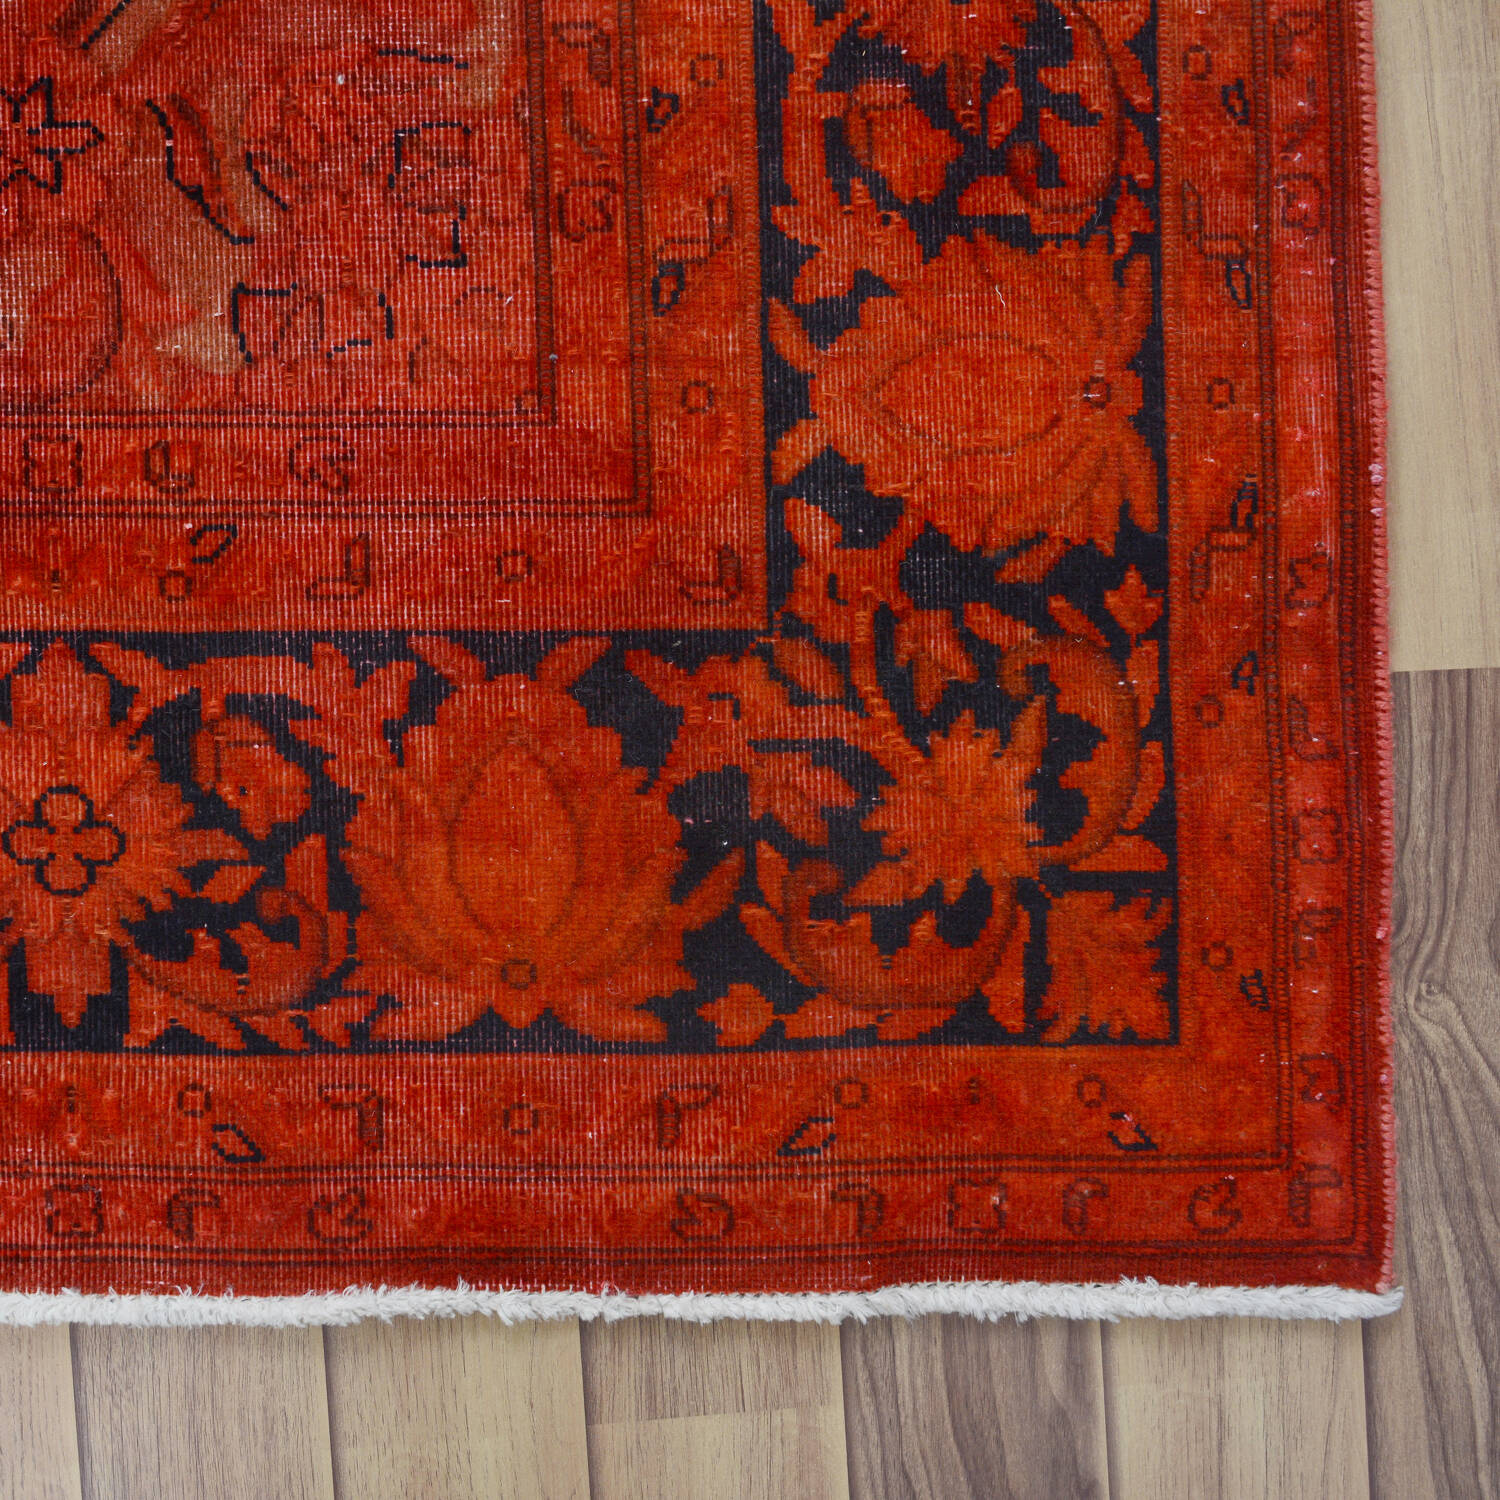 Antique Over Dyed Floral Kerman Persian Area Rug 7x9 image 5